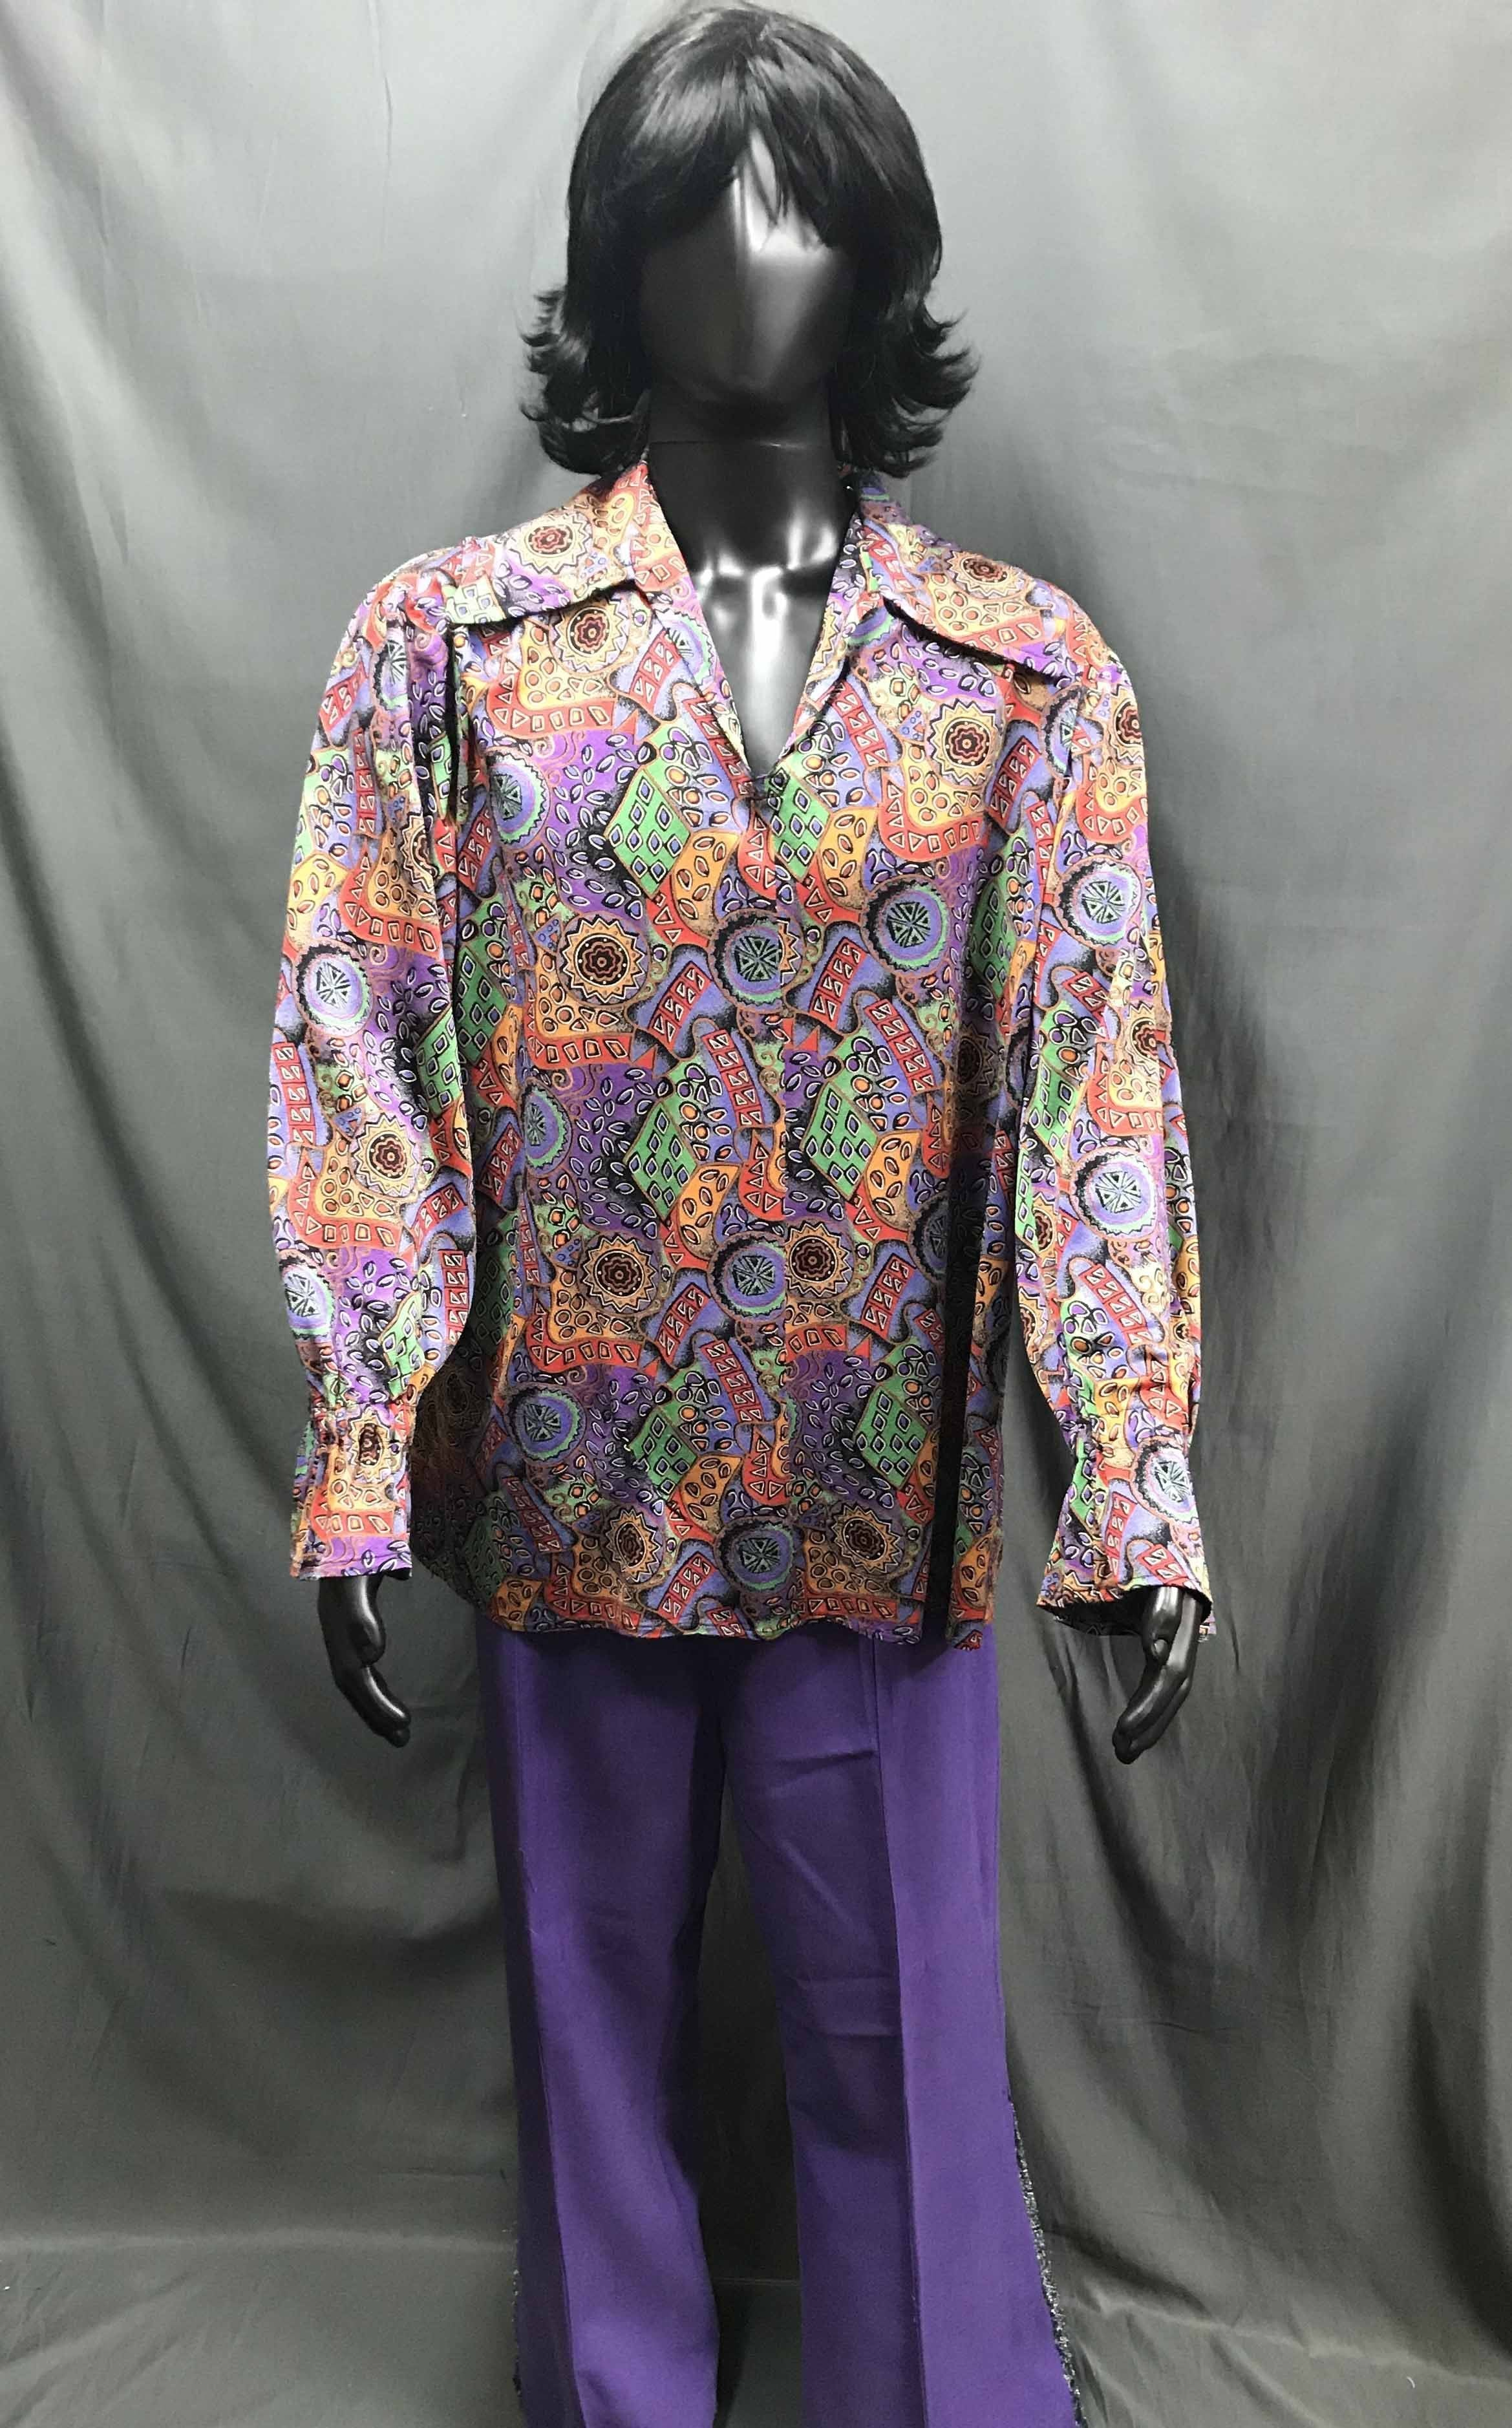 60-70s Mens Hippie Costume - Coloured Pattern Shirt with Purple Flares - Hire - The Costume Company | Fancy Dress Costumes Hire and Purchase Brisbane and Australia